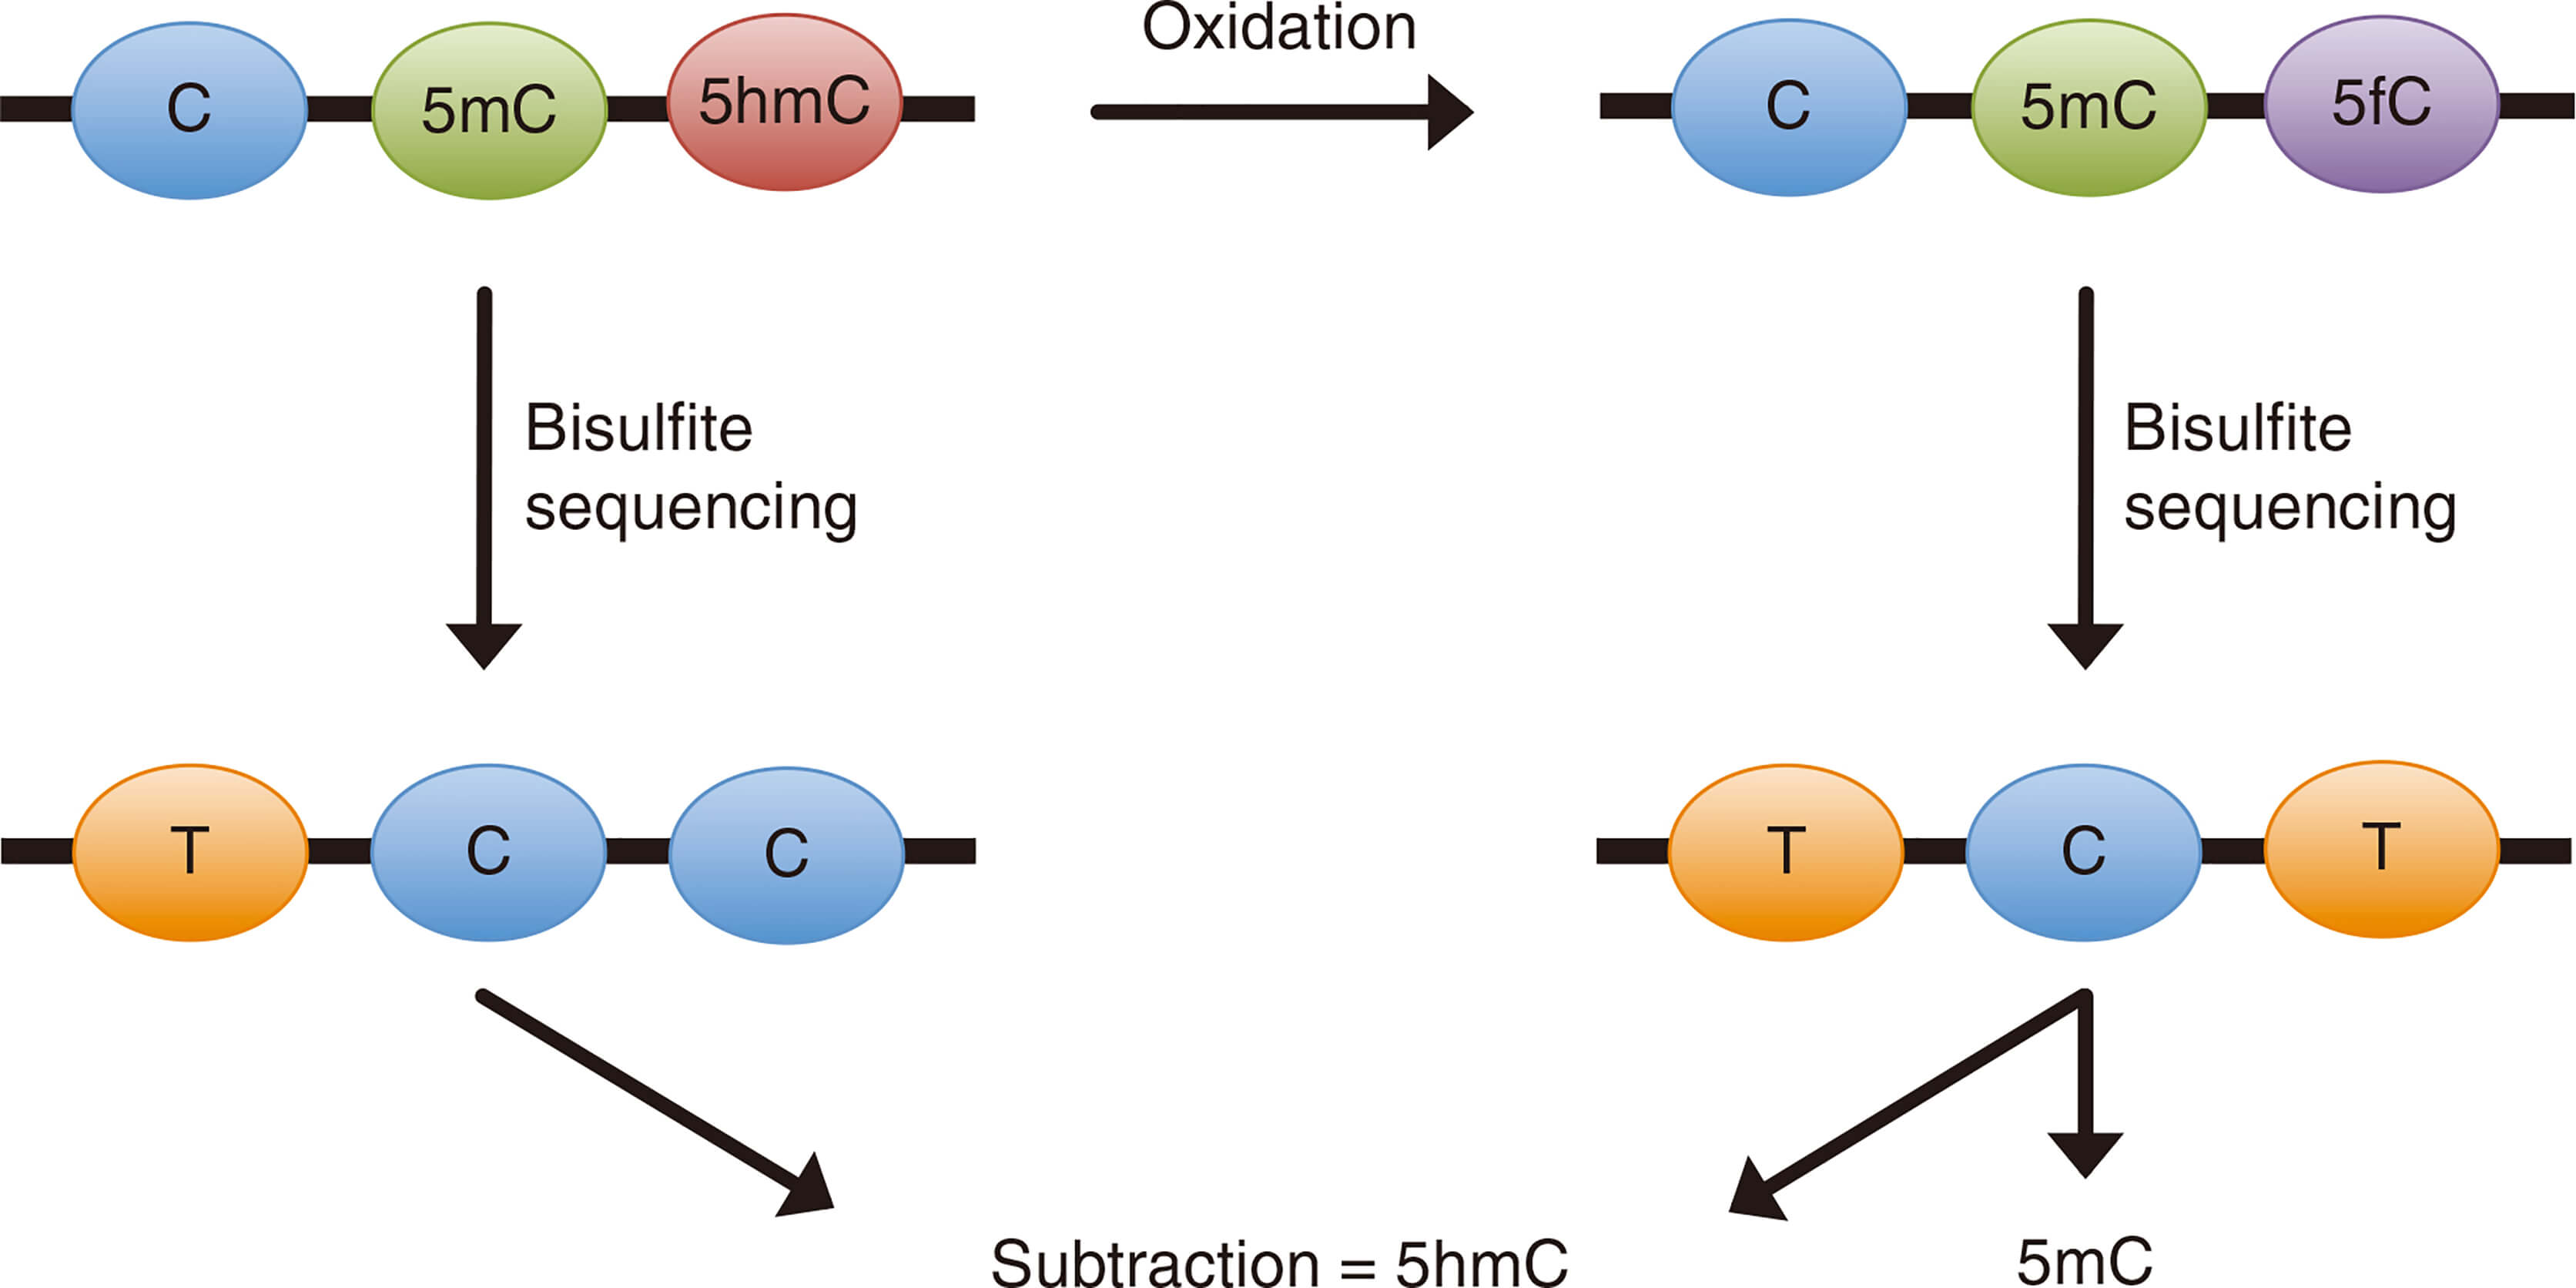 Schematic illustration of the principle behind oxidative bisulfite sequencing (oxBS-Seq)